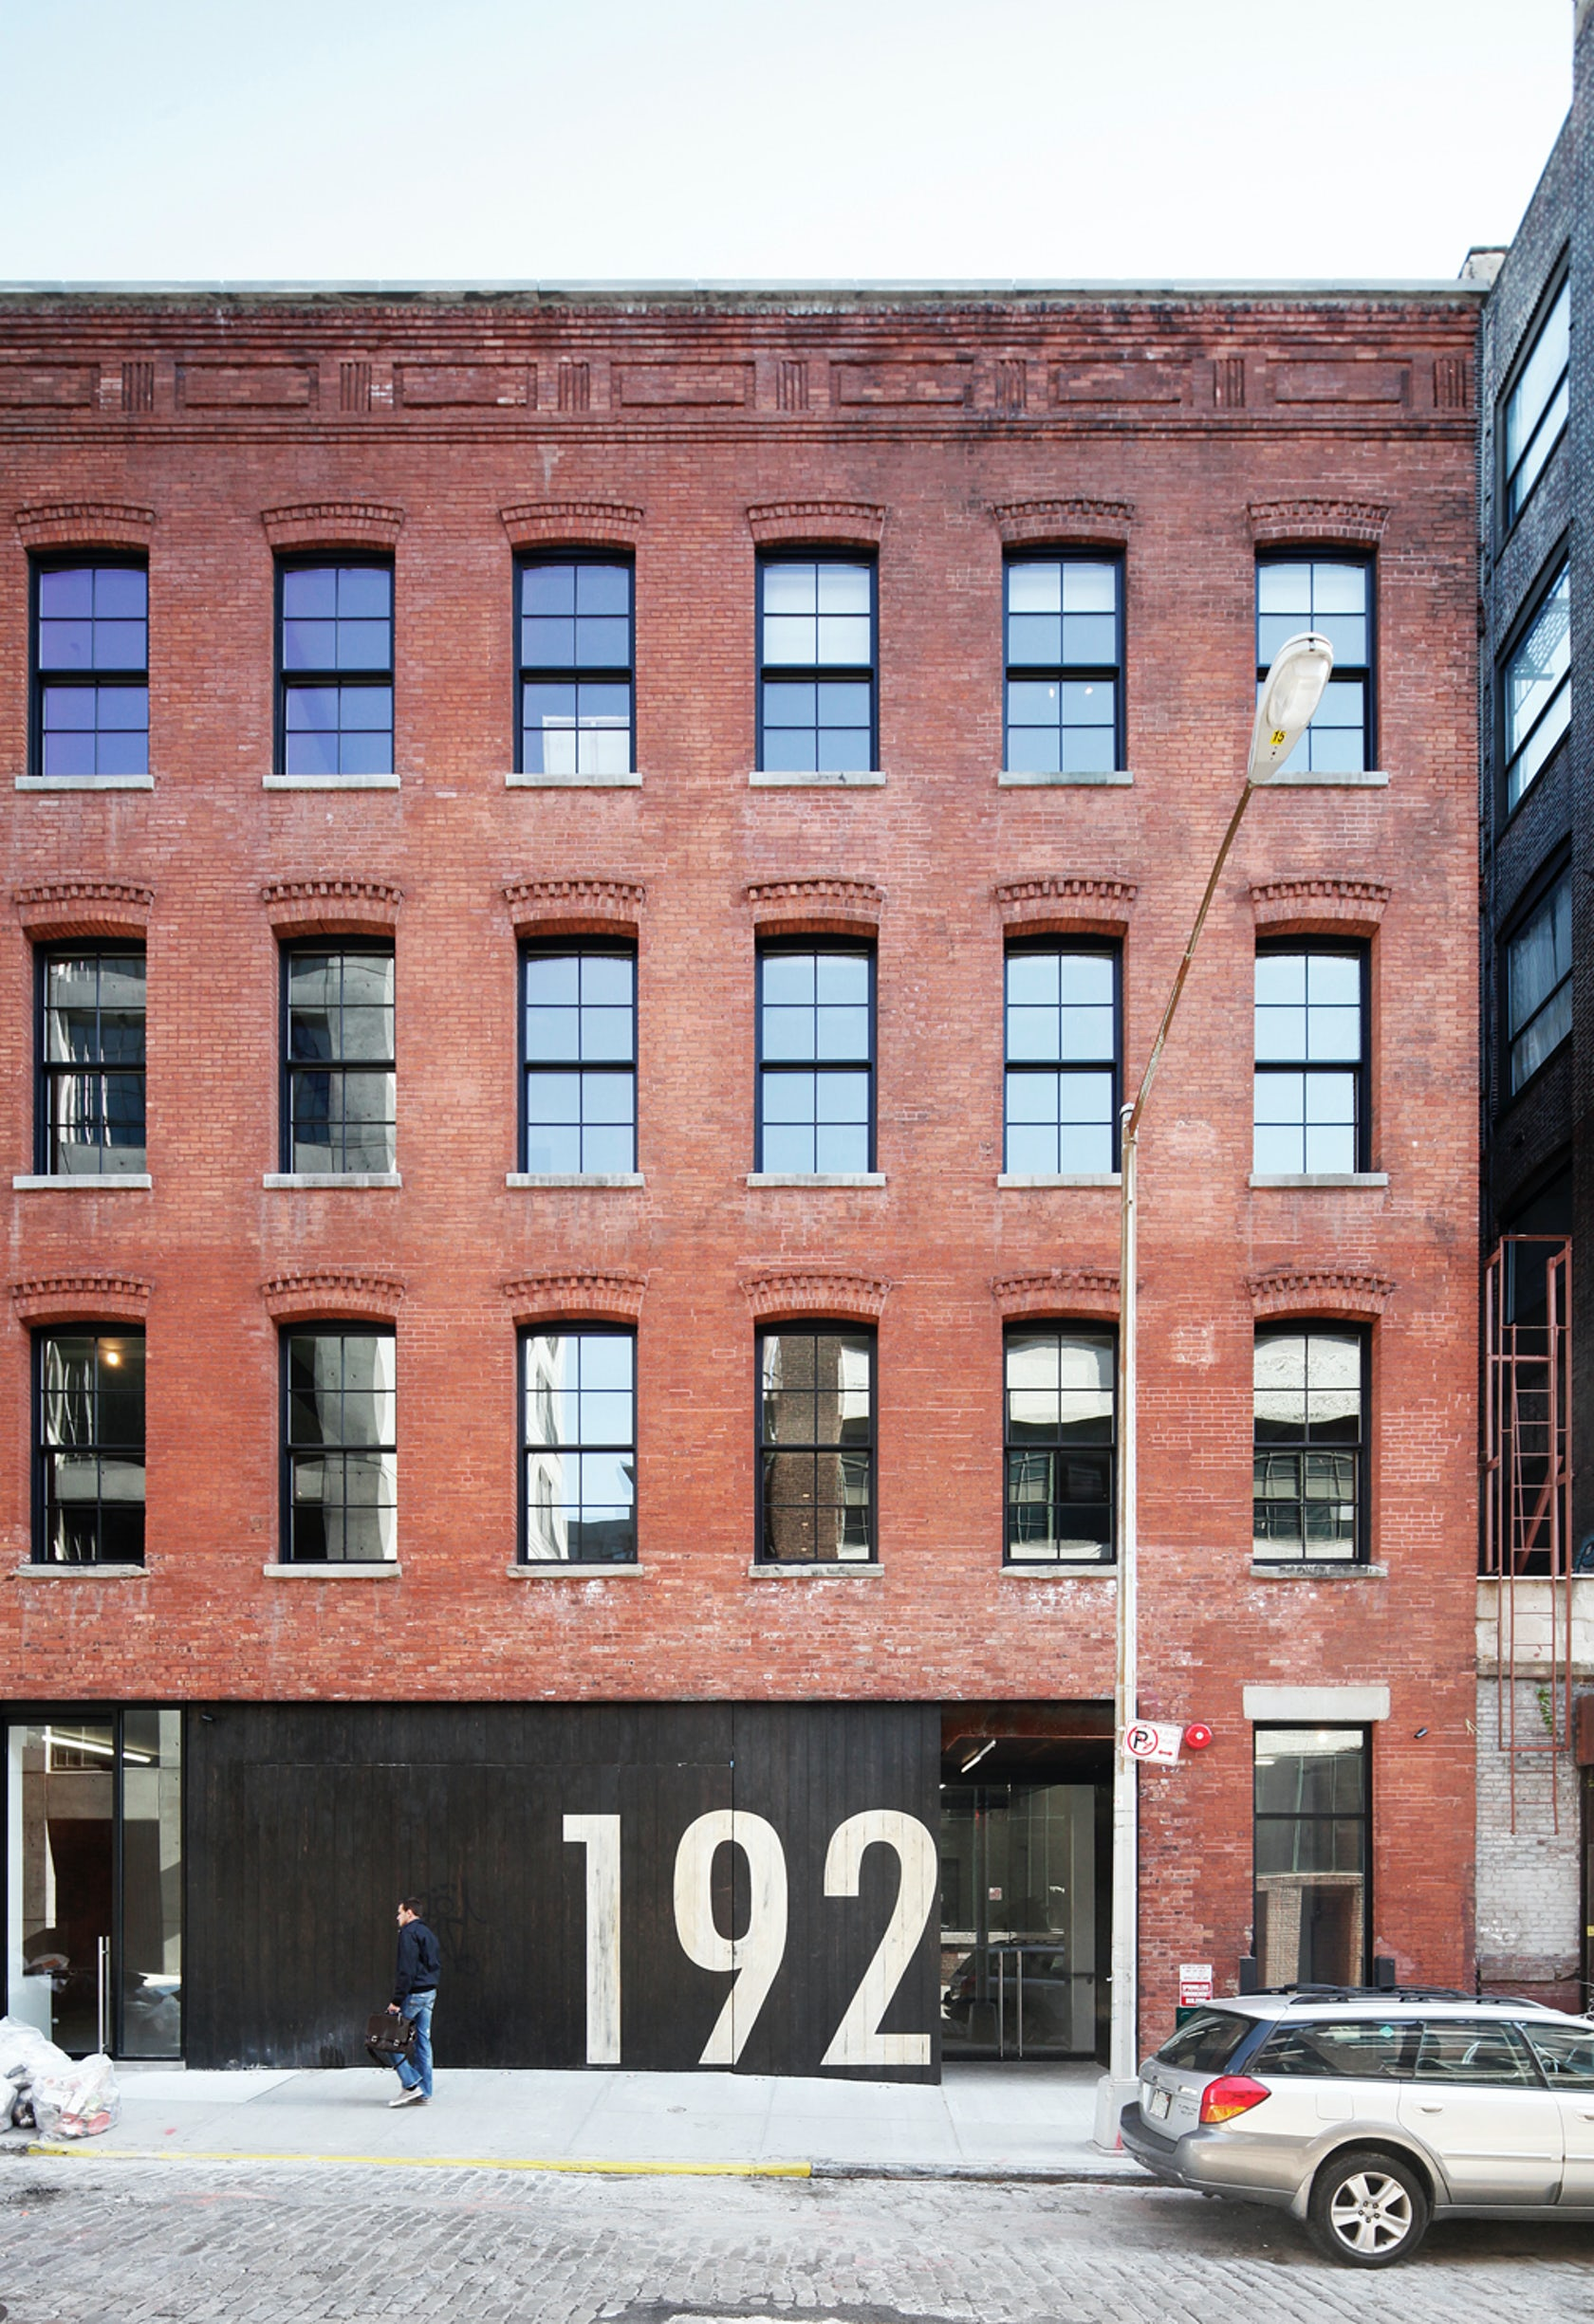 192 water street architizer for Milo motors north syracuse